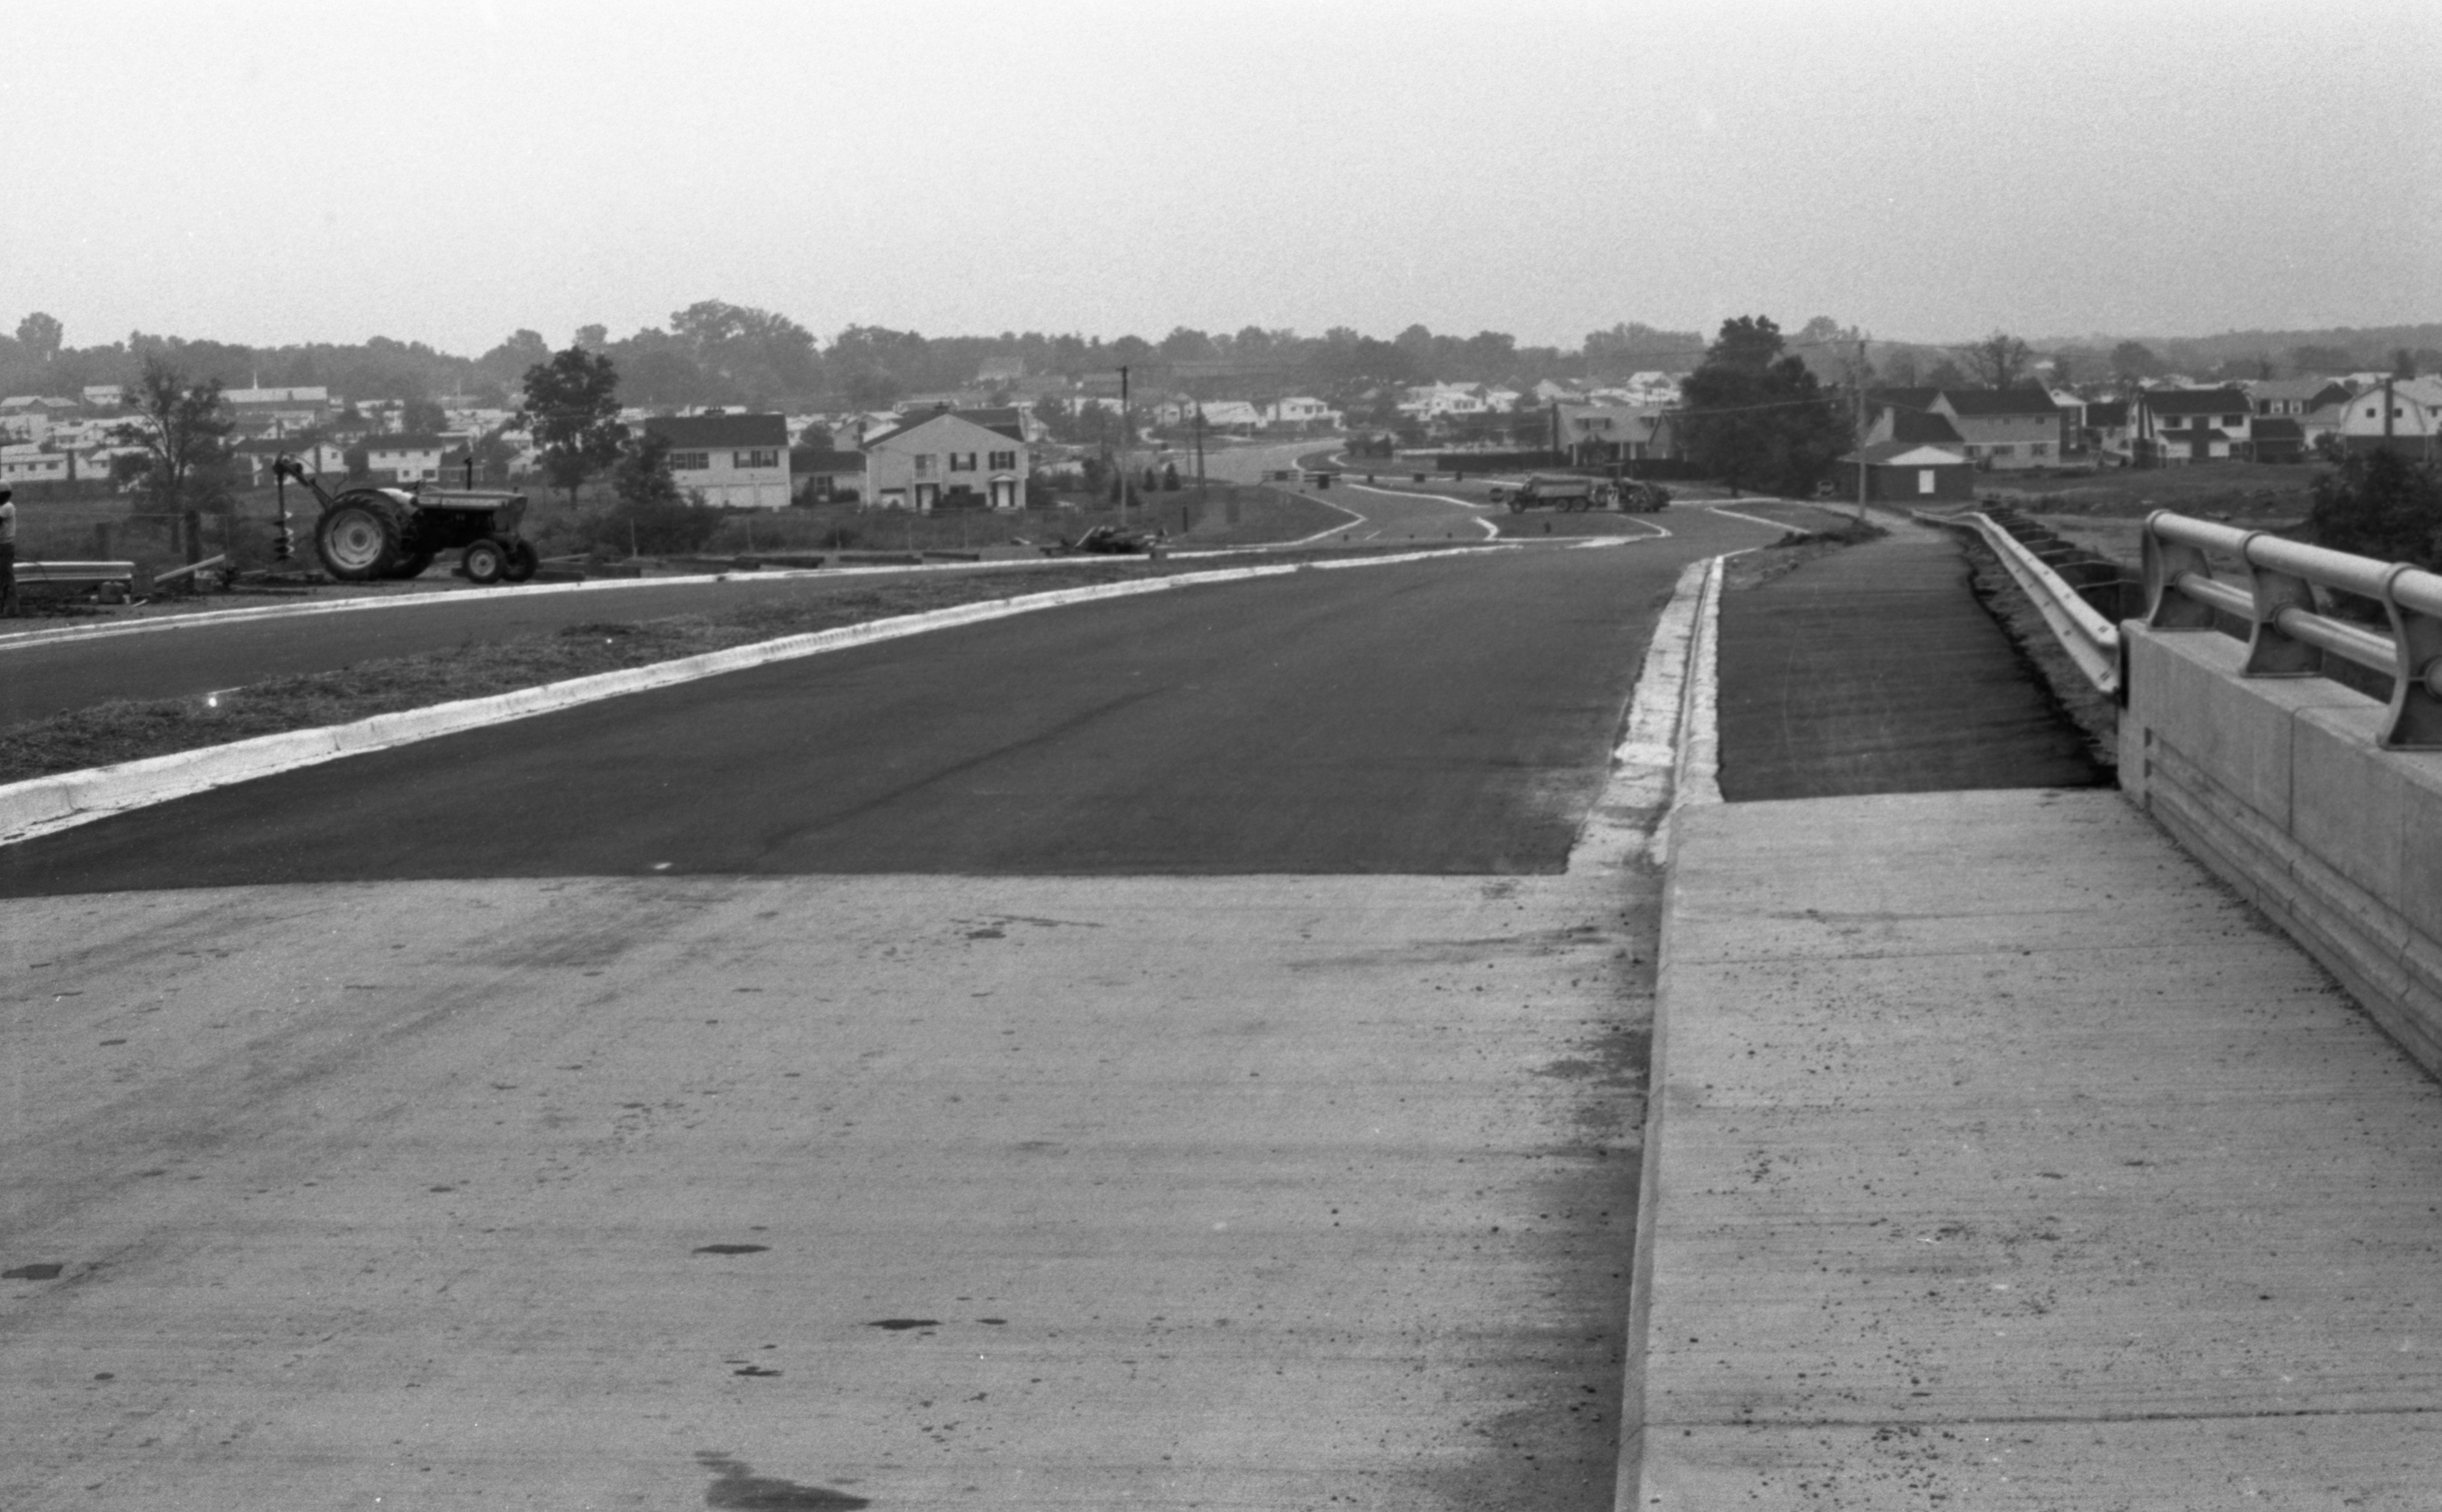 Looking East - Newly Constructed Section Of Eisenhower Parkway Between Railroad Bridge & Hayes Court, September 1974 image